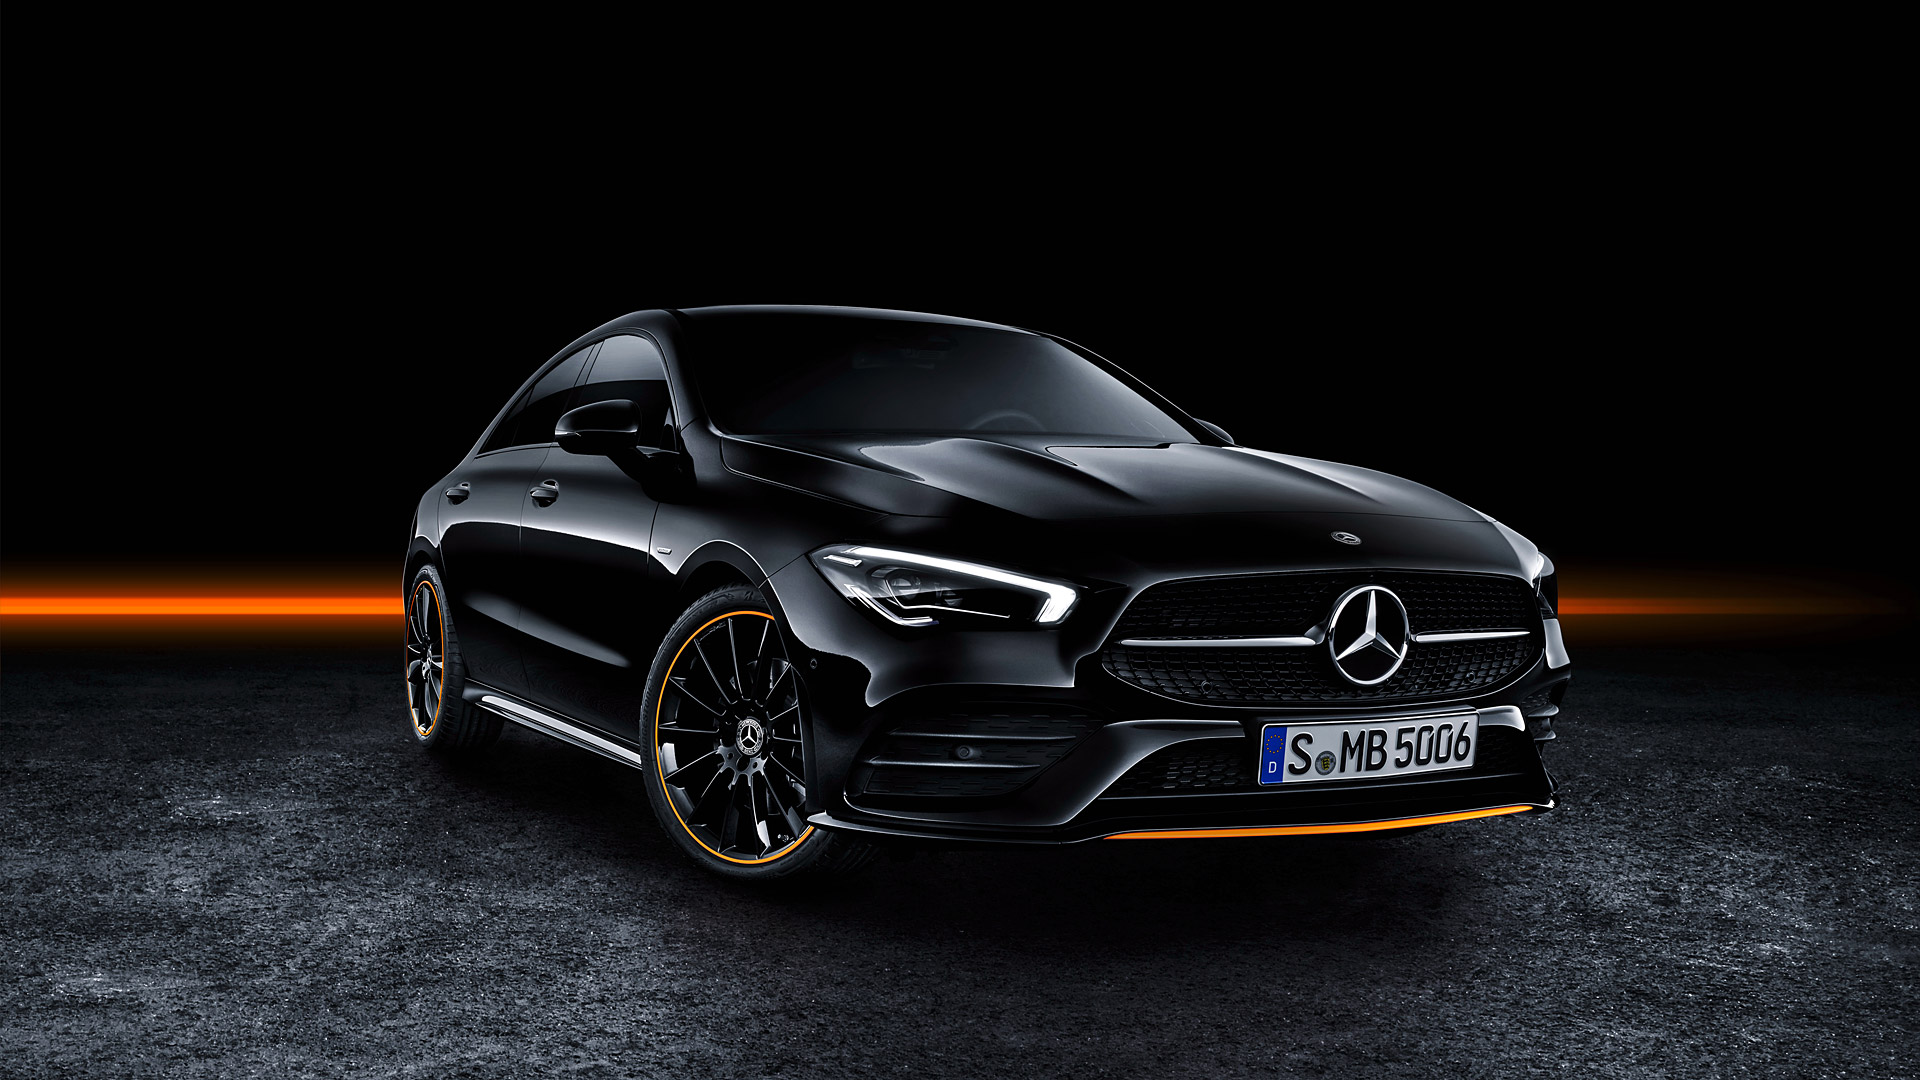 2020 Mercedes Benz Cla Wallpapers Hd Images Wsupercars Amg 35 1920x1080